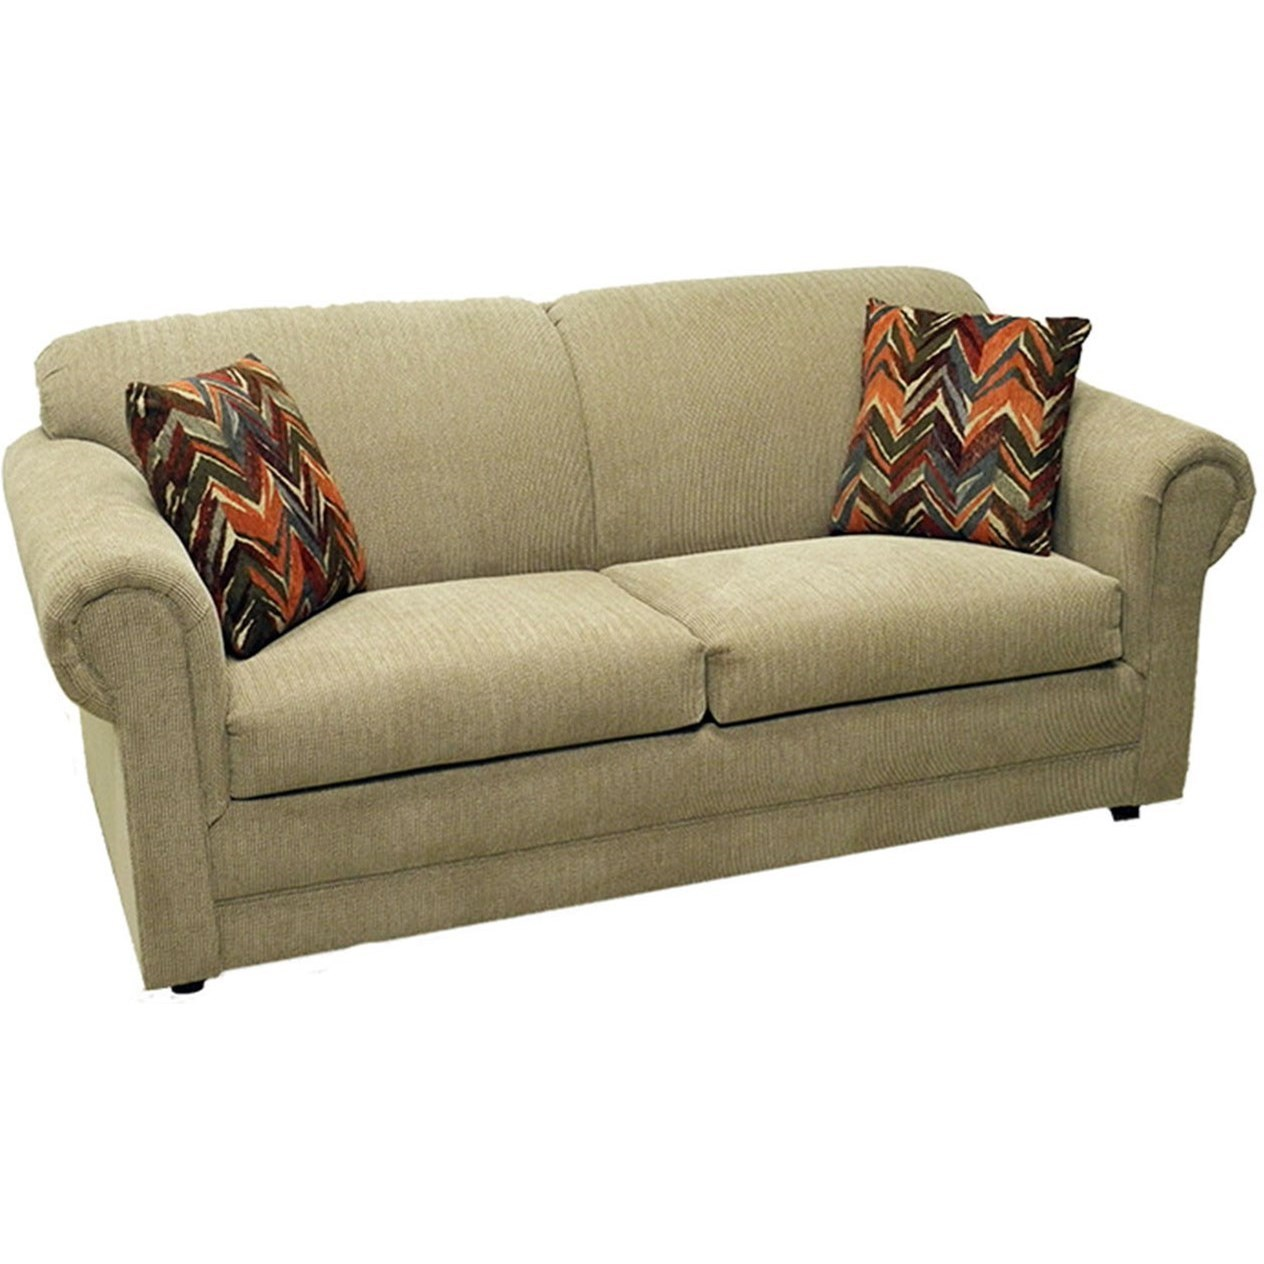 LaCrosse Hayden Full Sofa Sleeper With Rolled Arms